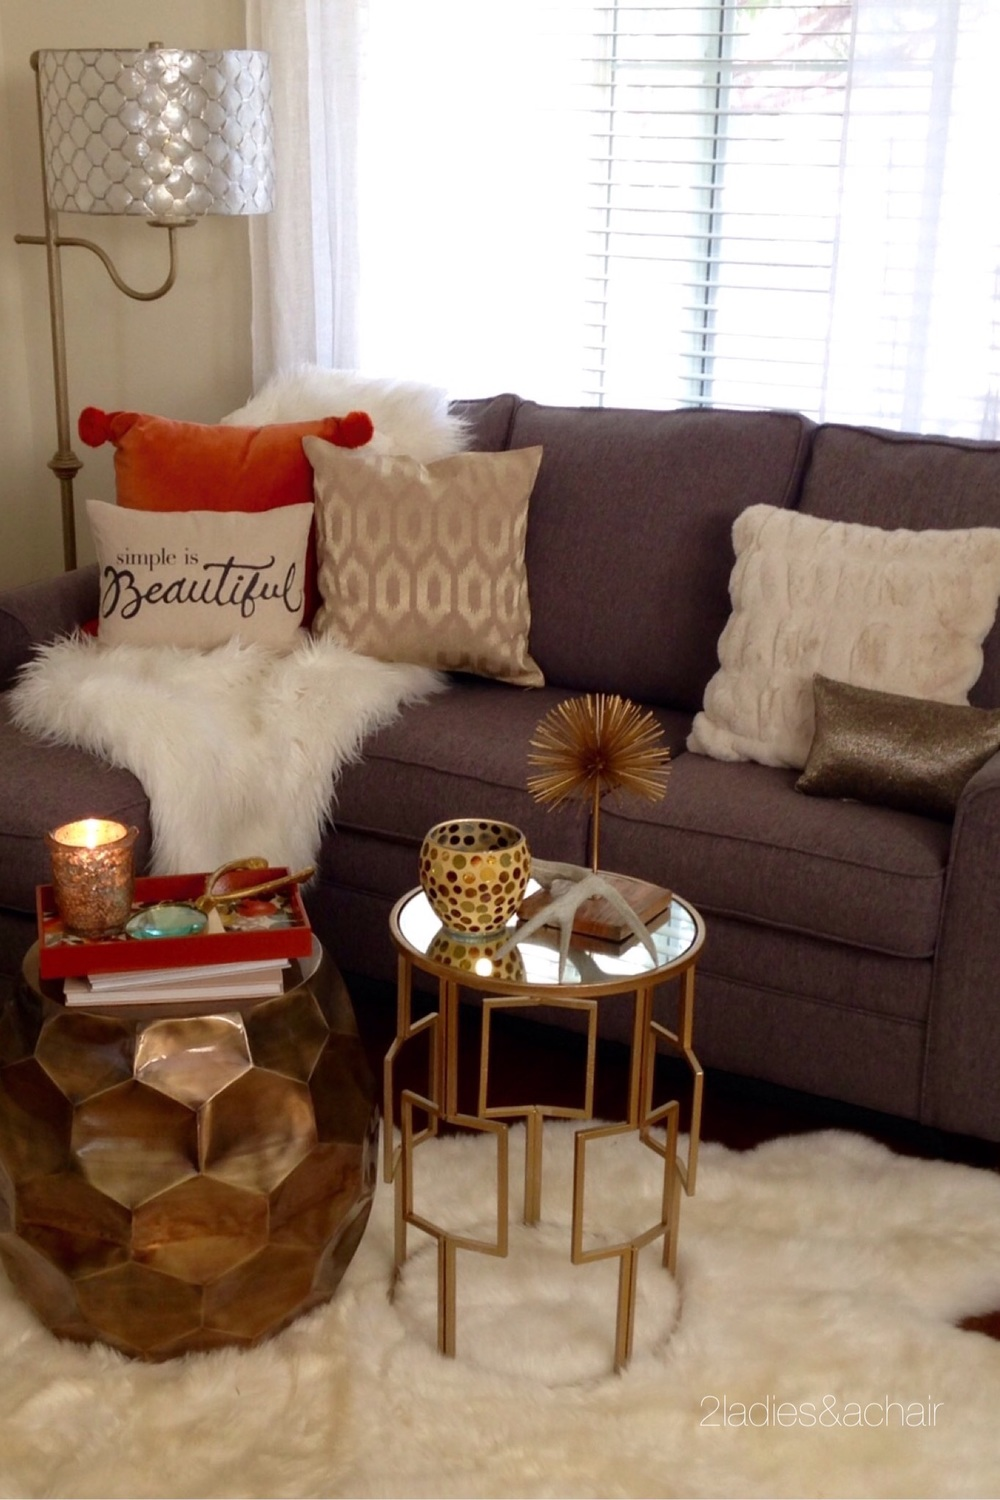 10 Large Living Room Ideas To Fall In Love With: 2 Ladies & A Chair